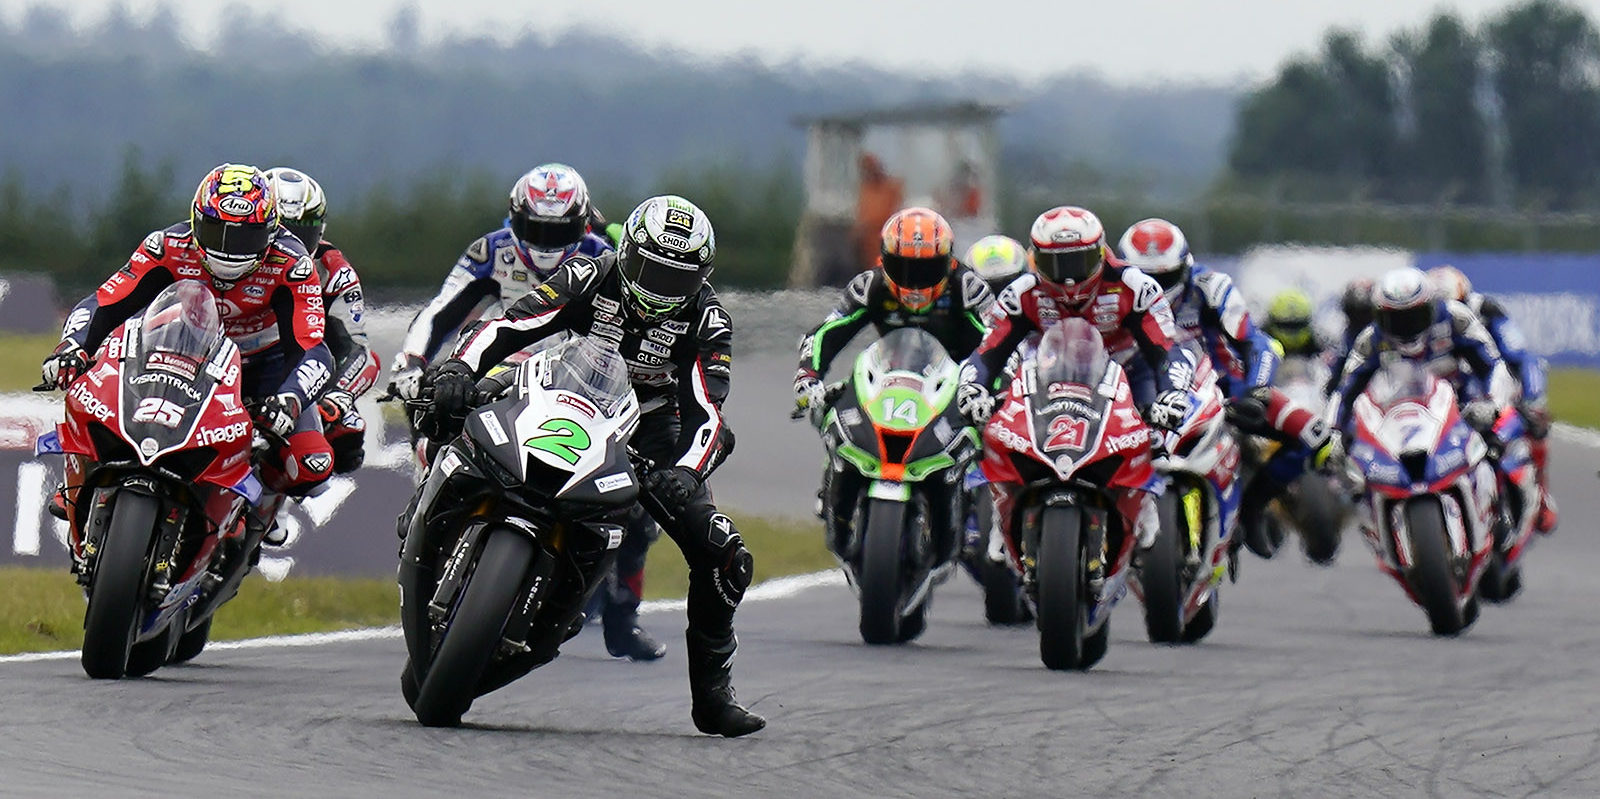 Glenn Irwin (2) leads Josh Brookes (25), Christian Iddon (21) and the rest of the British Superbike field at Snetterton. Photo courtesy MSVR.